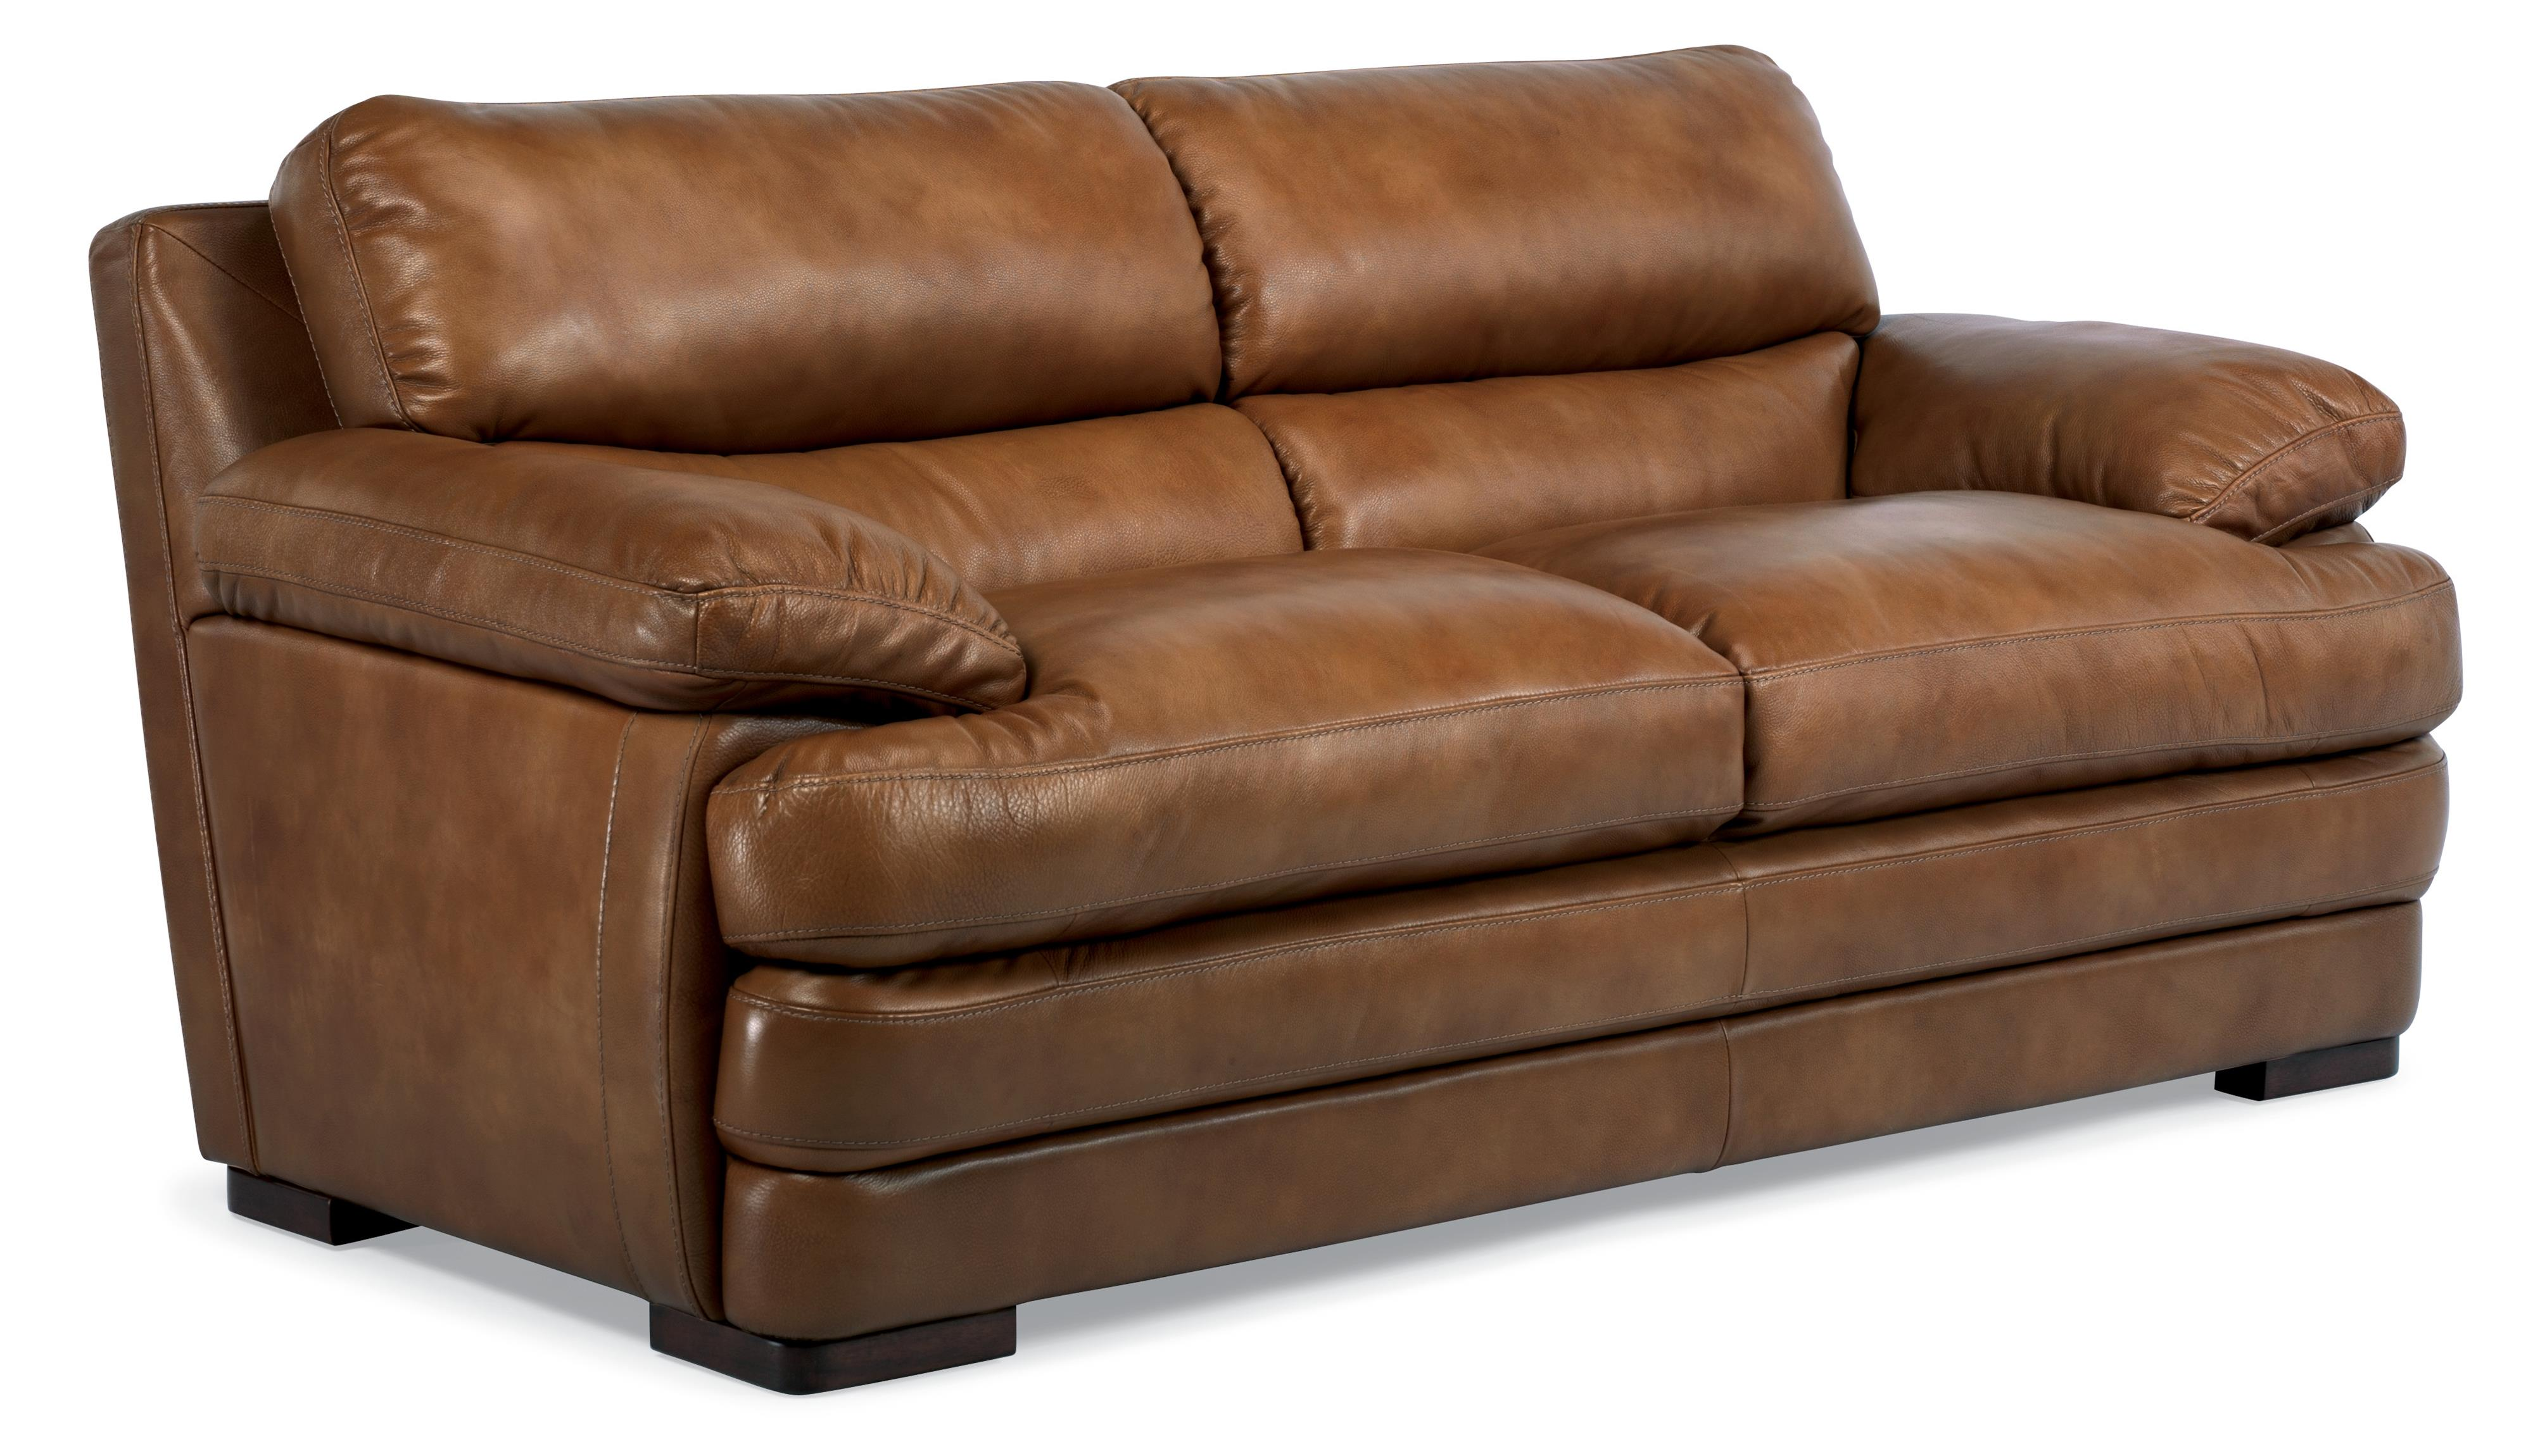 Flexsteel Latitudes Dylan Leather Two Cushion Sofa